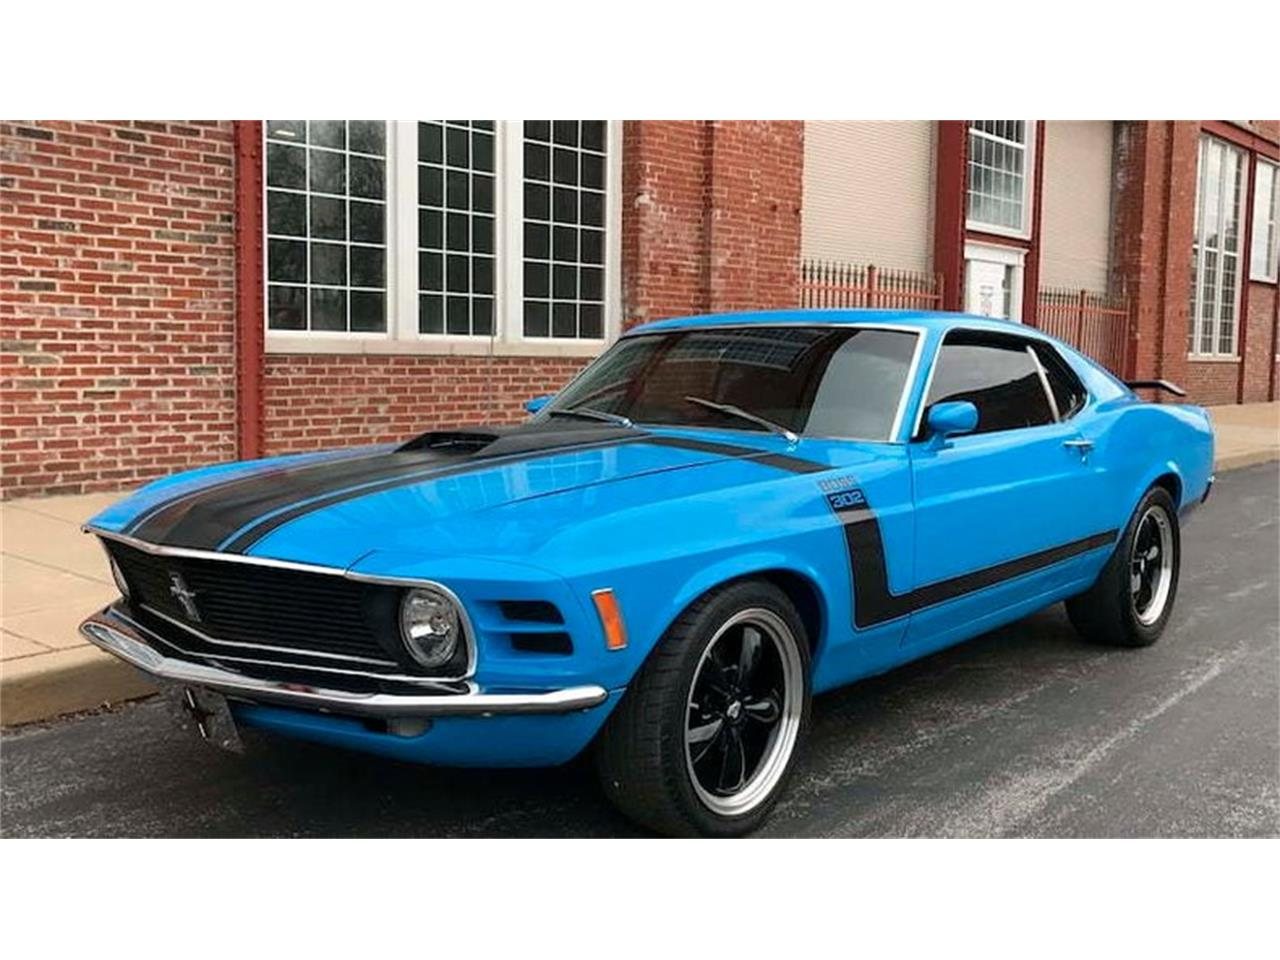 Large picture of 70 mustang mach 1 mql8